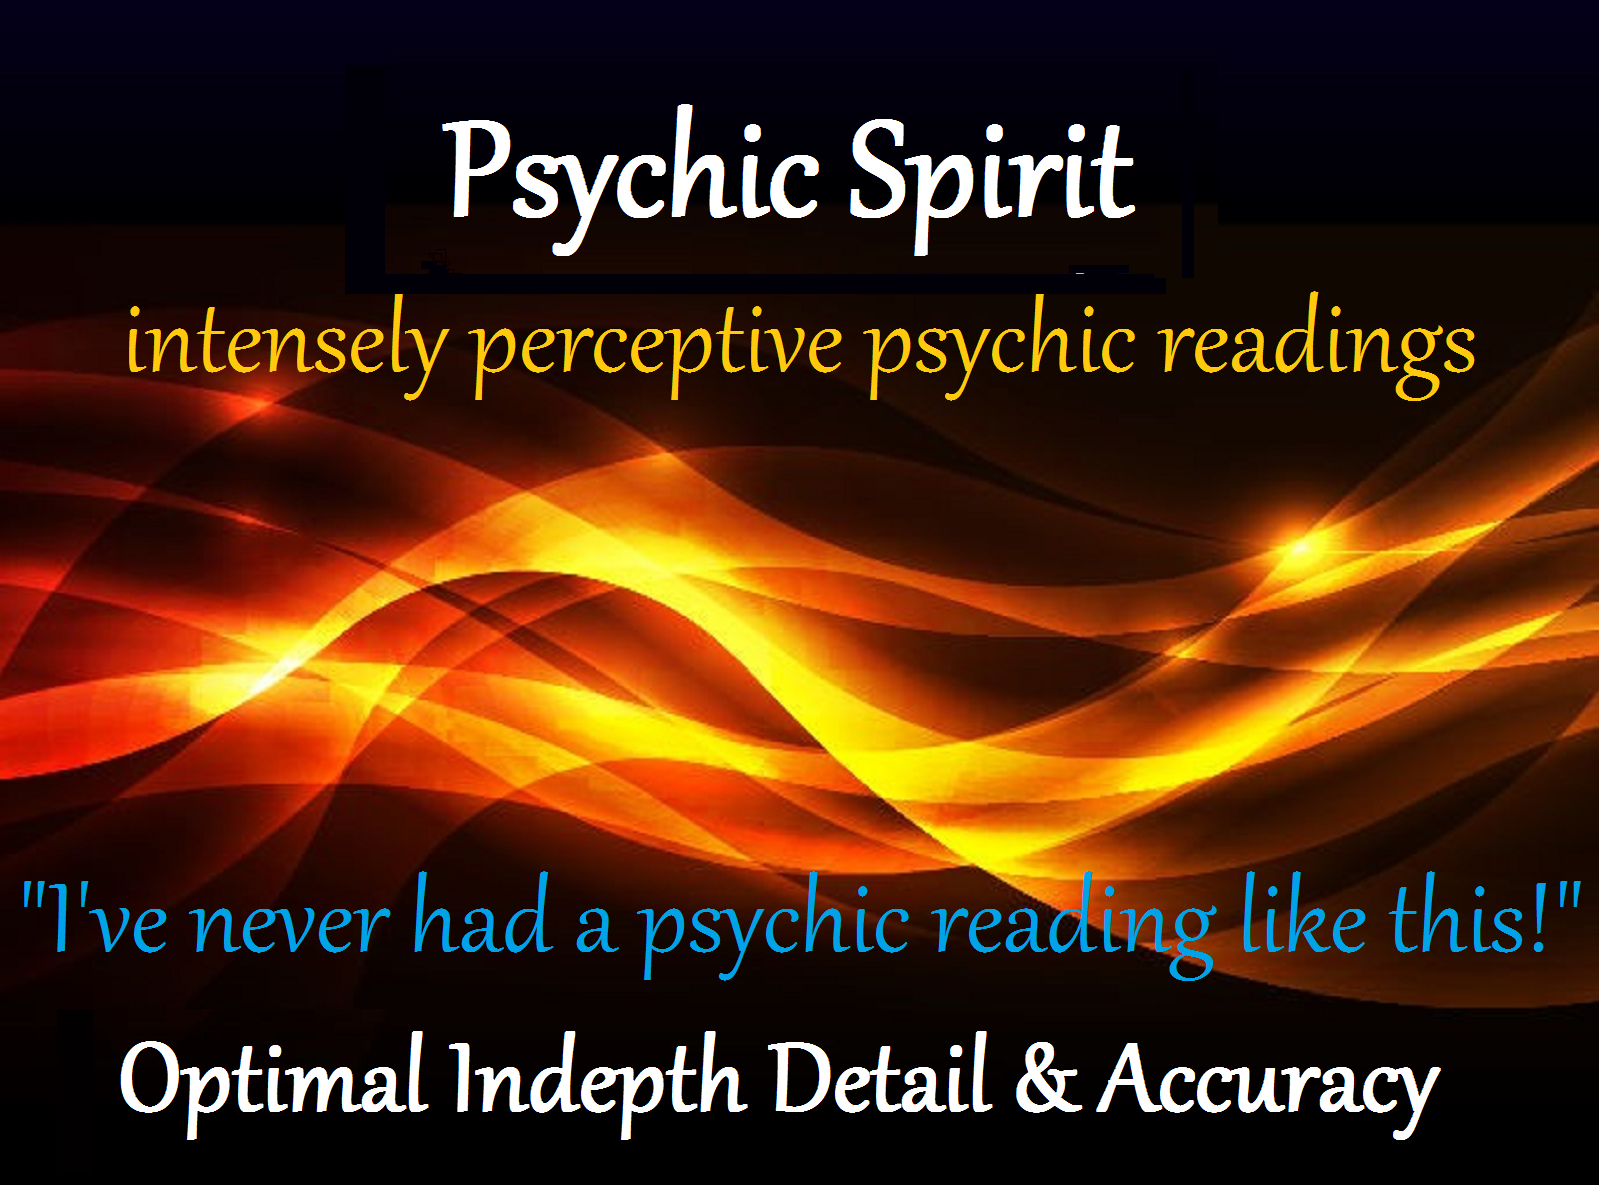 PSYCHIC READING, *FEATURED* Amazing Best Fast Indepth 1800 Character, Fast, Clairvoyant Psychics Medium Reading